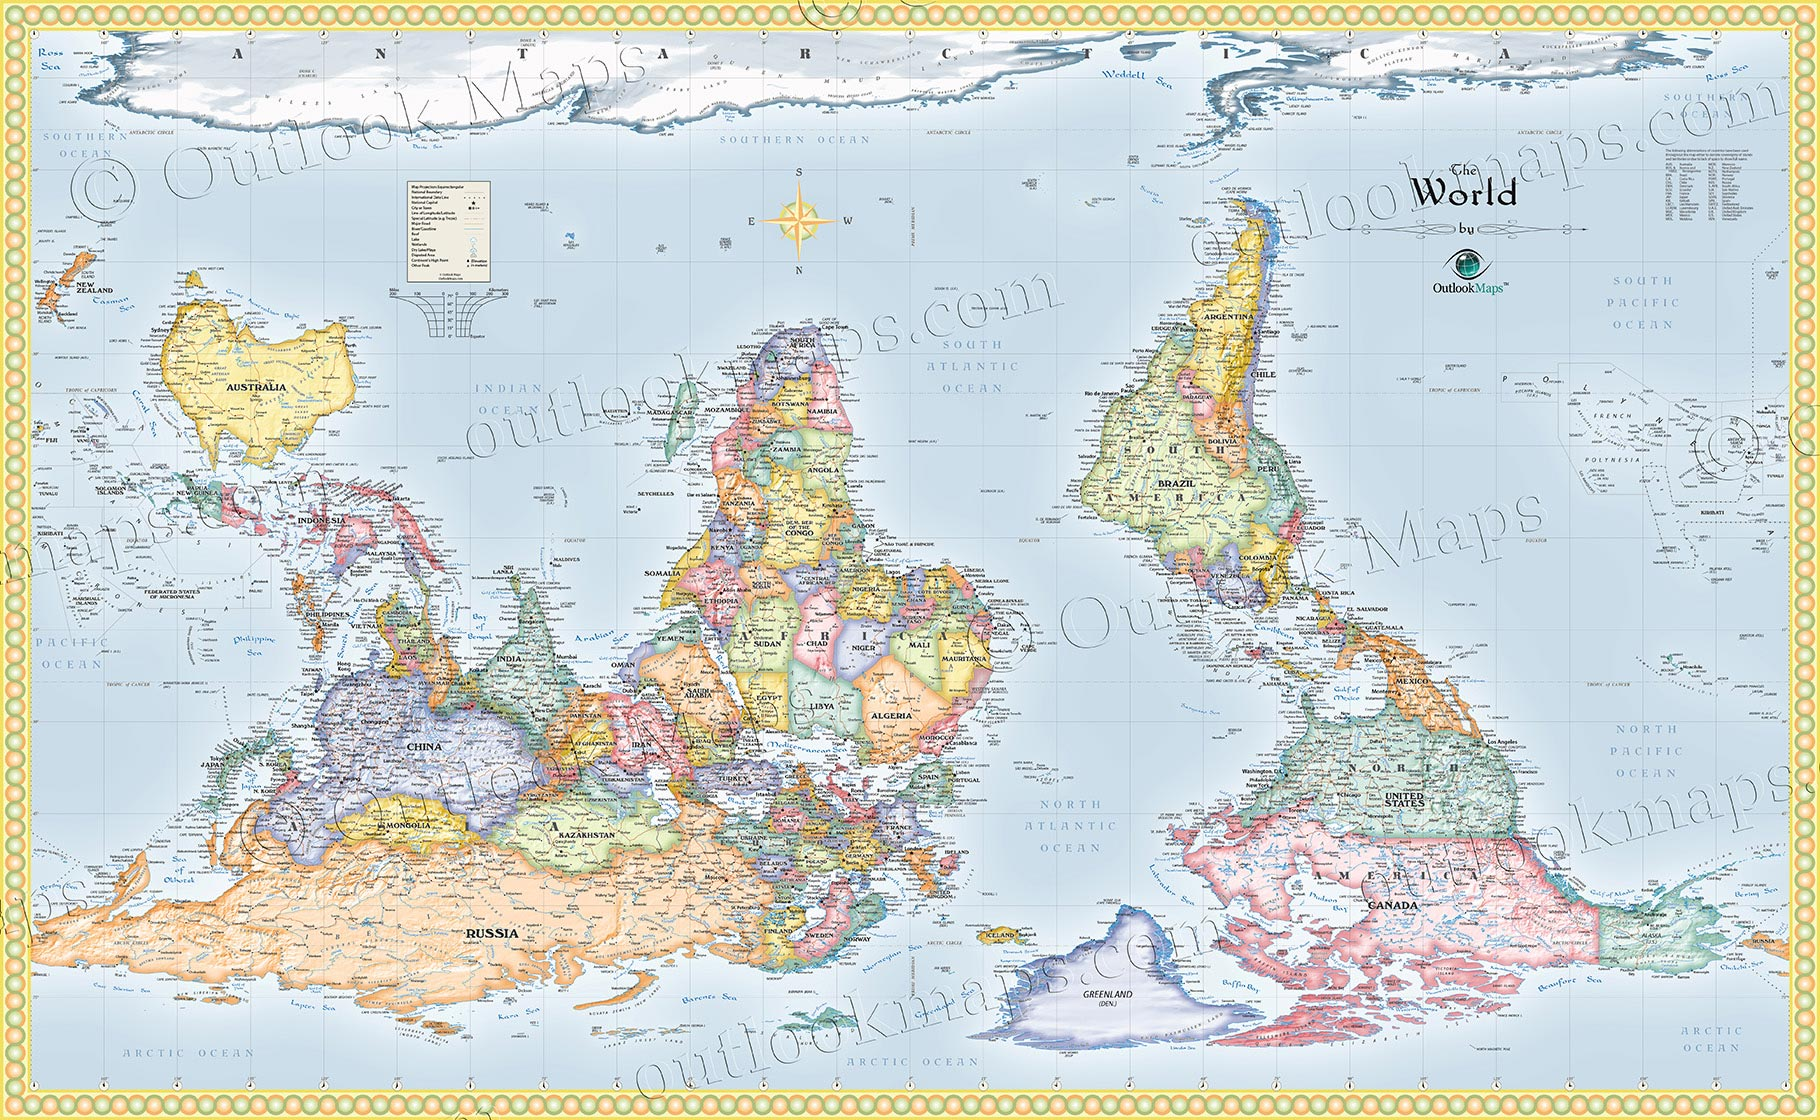 Upside Down World Map Upside Down World Map | Standard Political Map Style